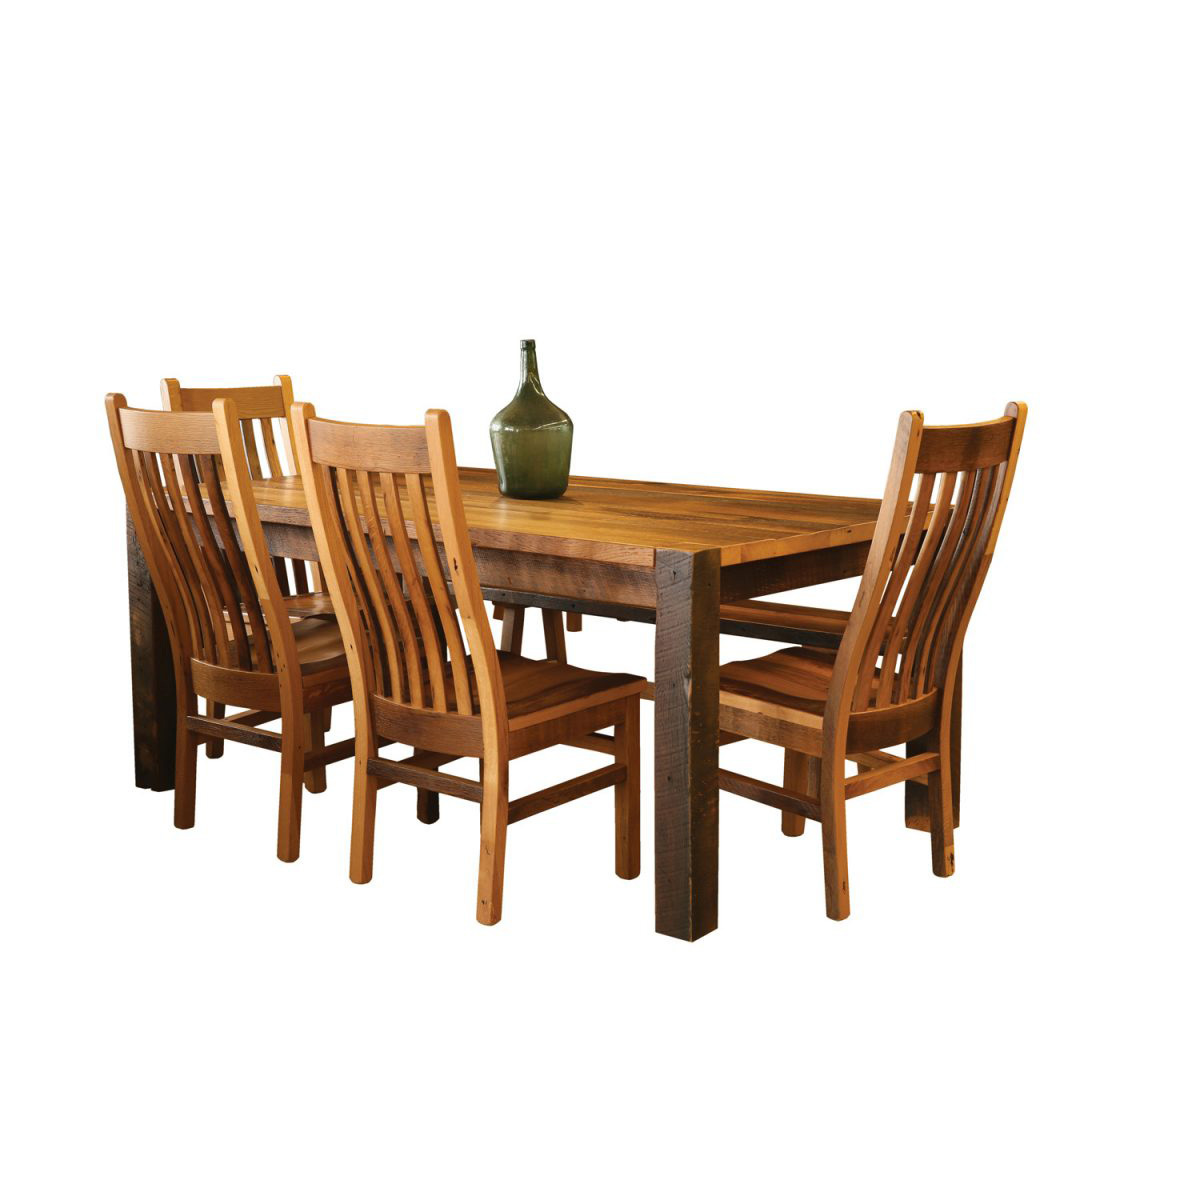 barnwood dining room chairs hammock chair stand instructions timber ridge table amish crafted furniture